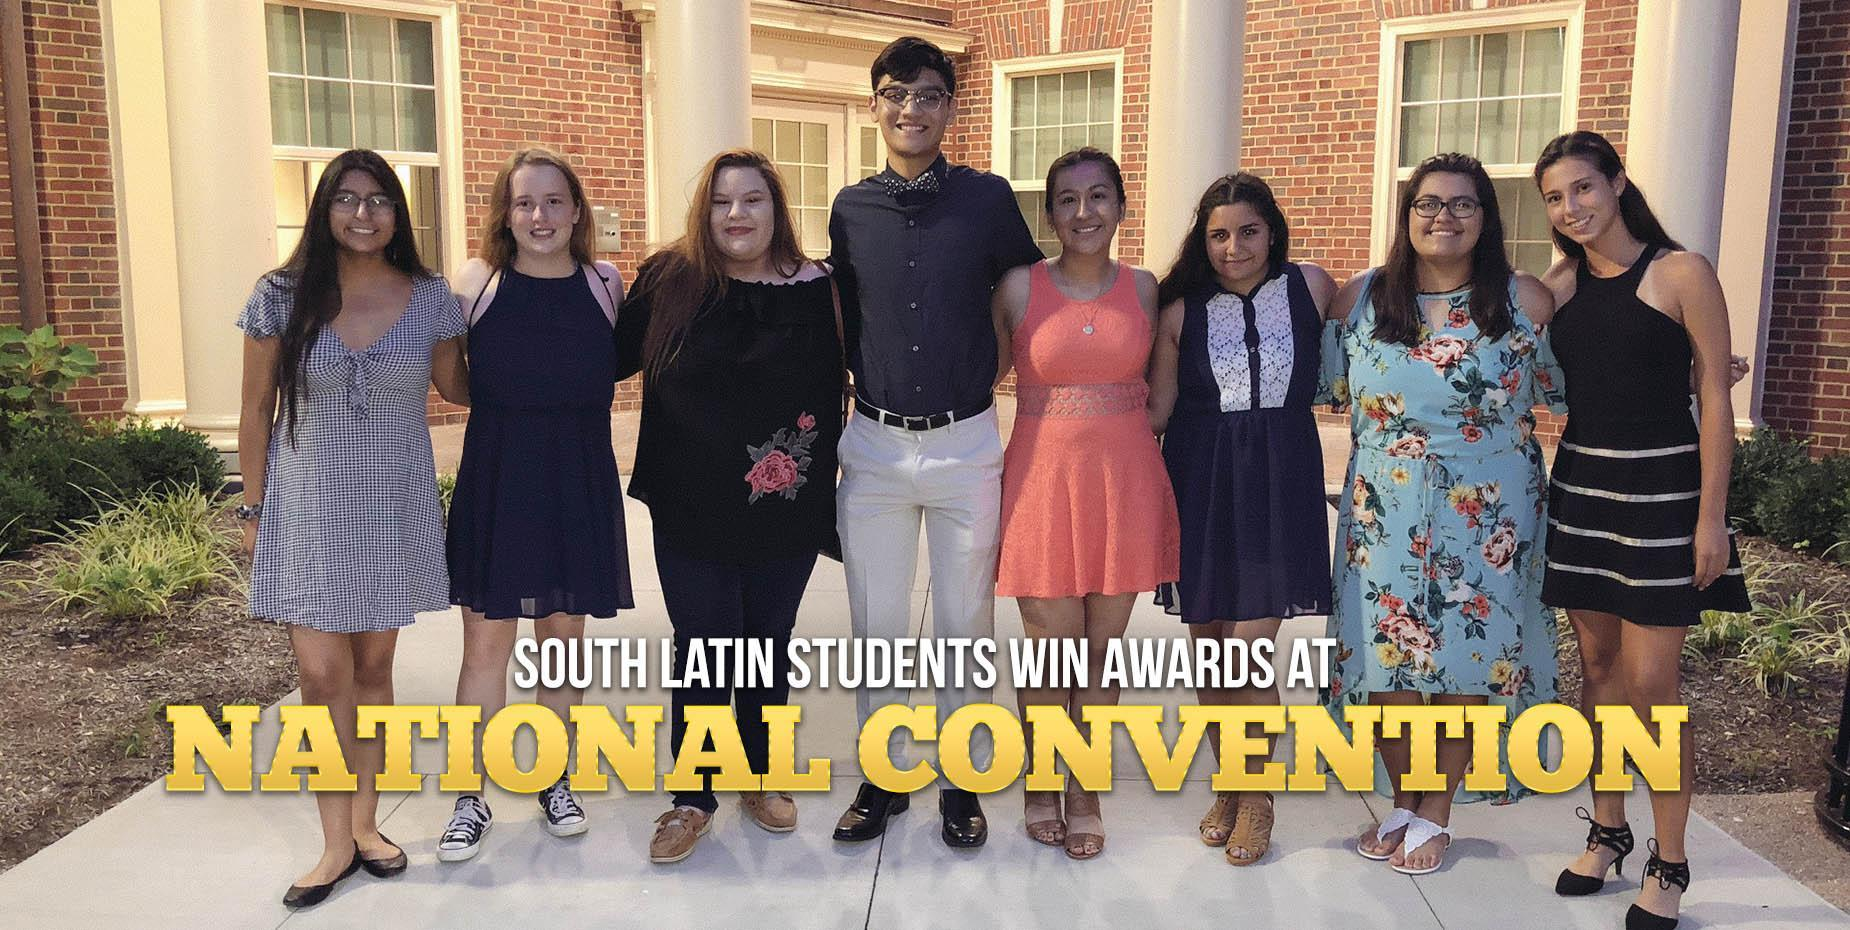 South Latin students win awards at national convention